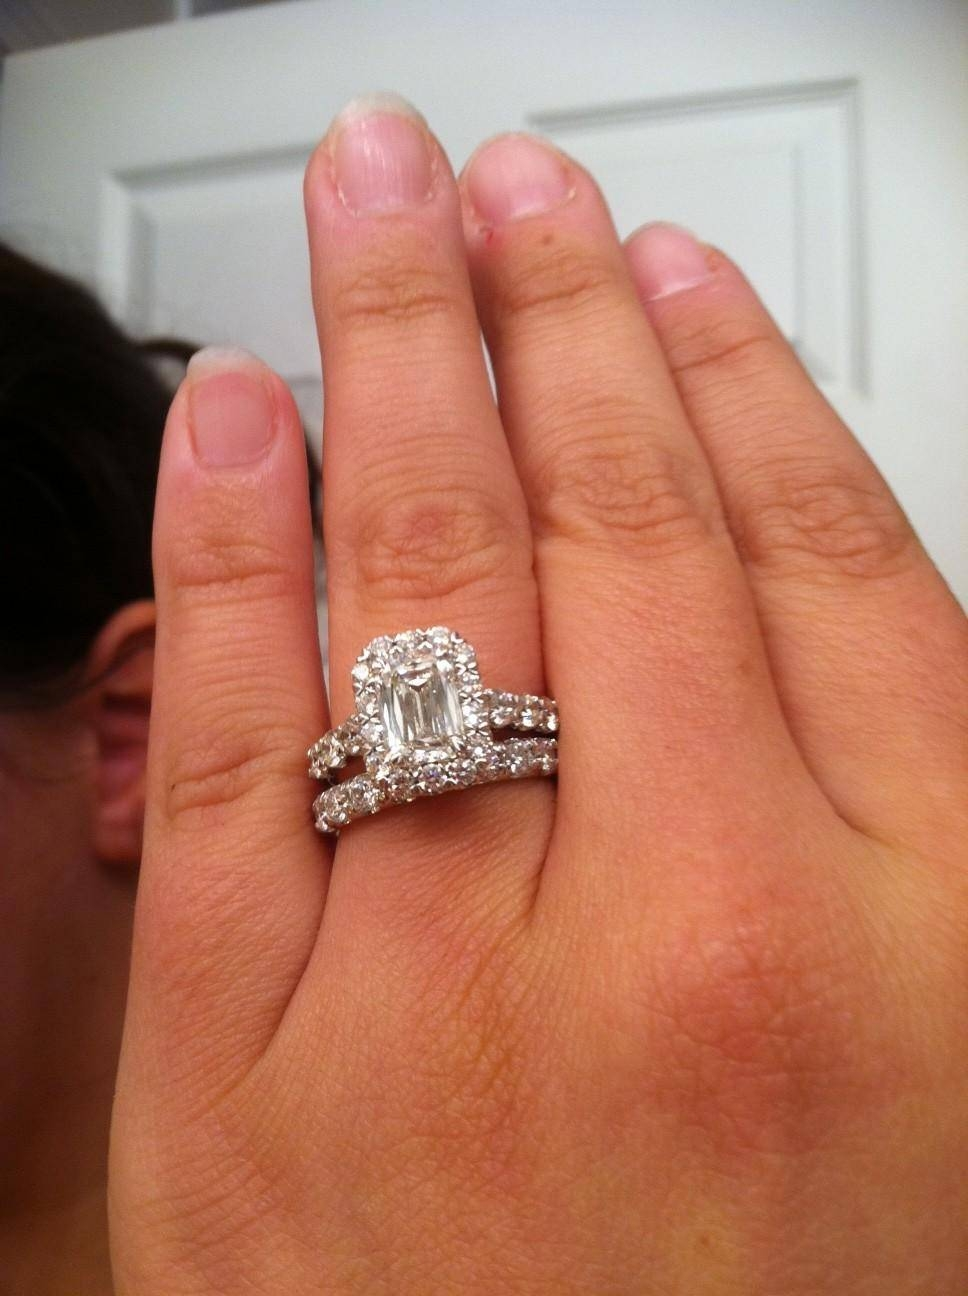 Engagement Rings : Beautiful Engagement Ring Costco Costco Pertaining To Costco Diamond Engagement Rings (View 2 of 15)